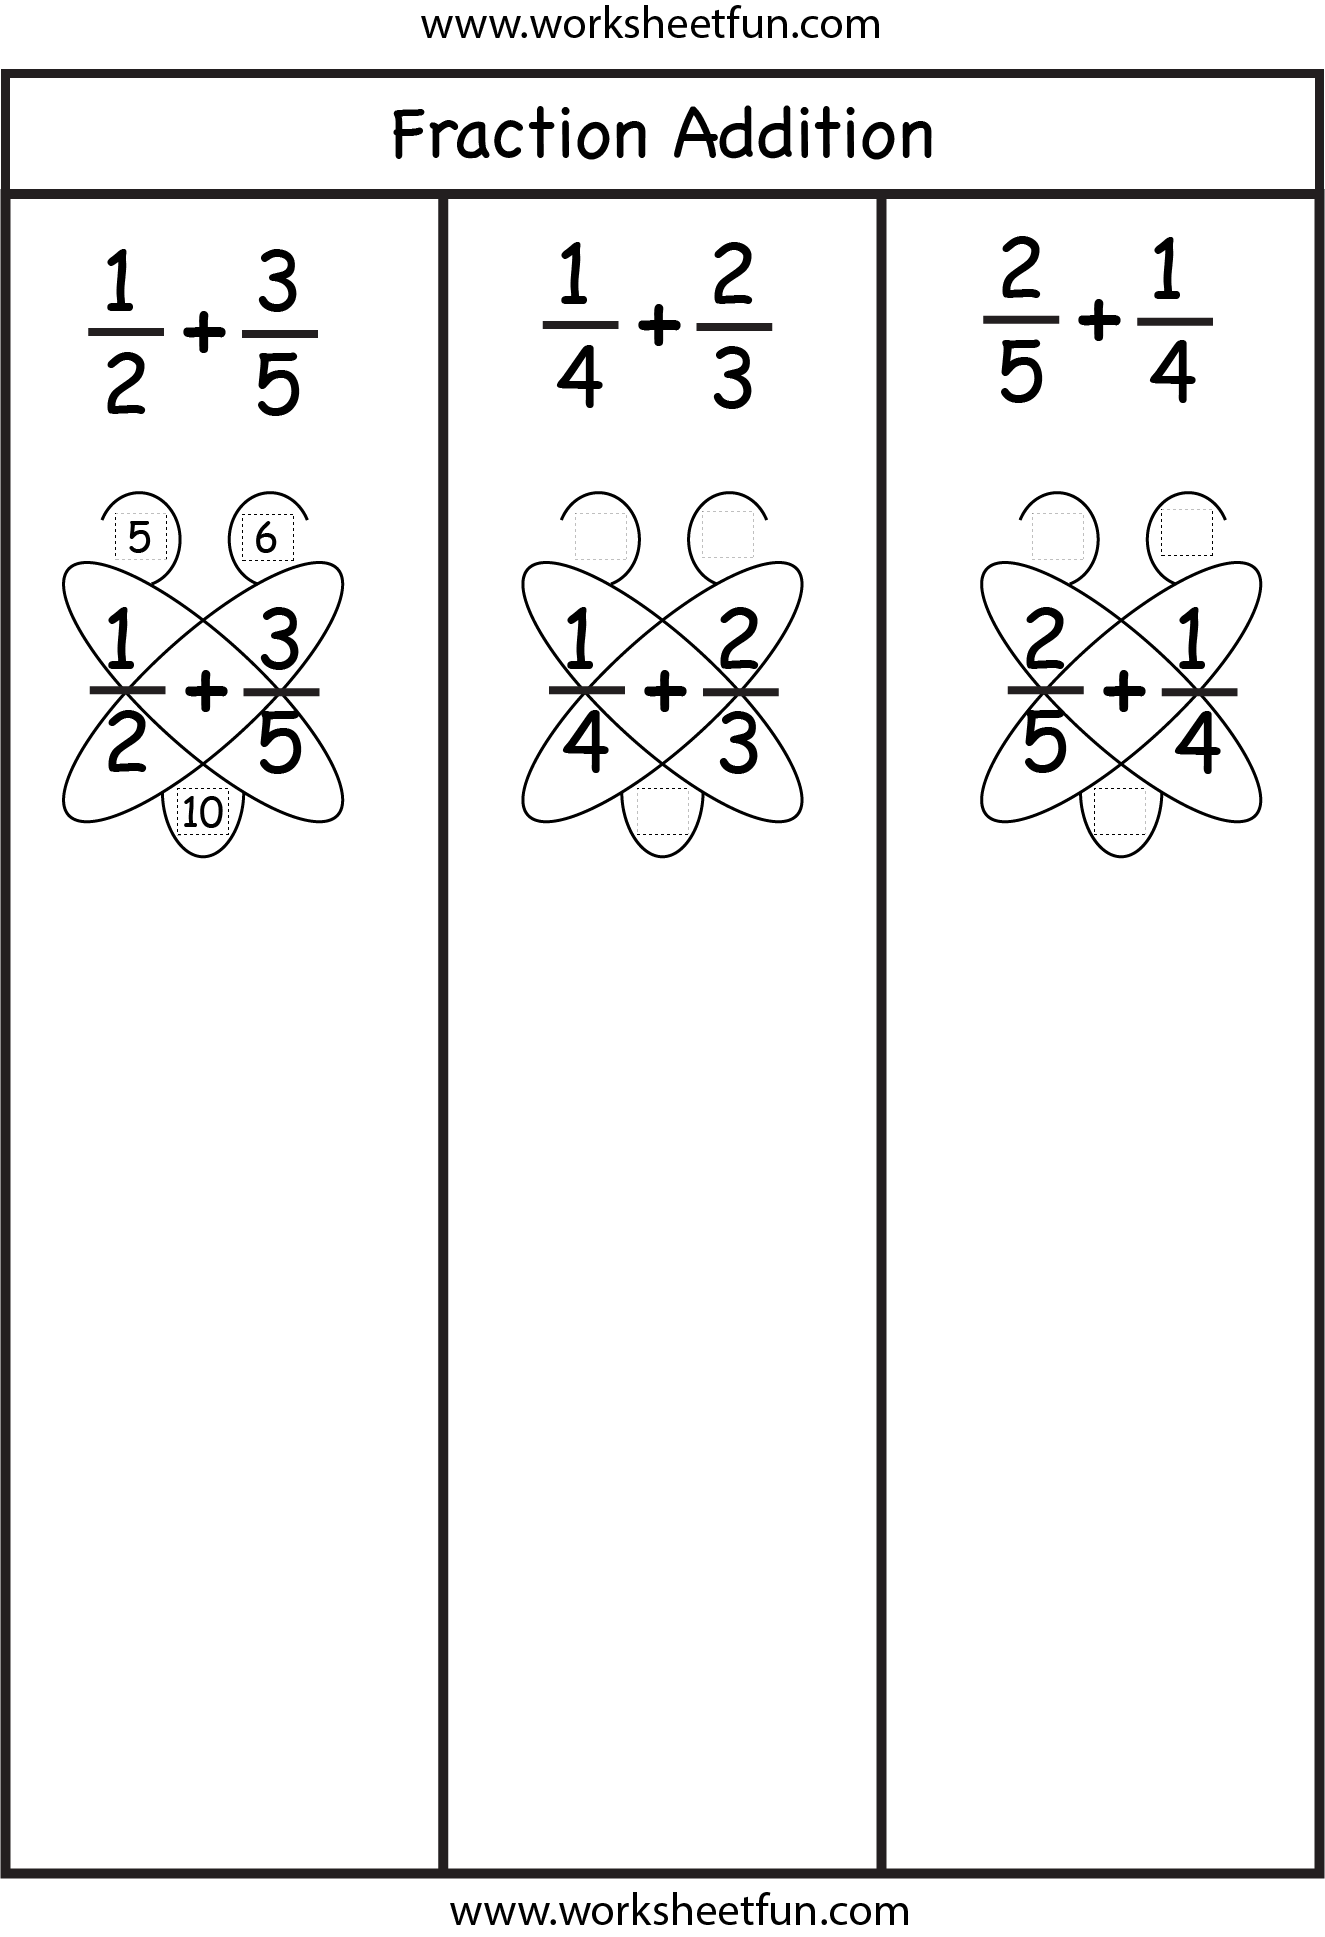 Fraction Addition Butterfly Method Free Printable